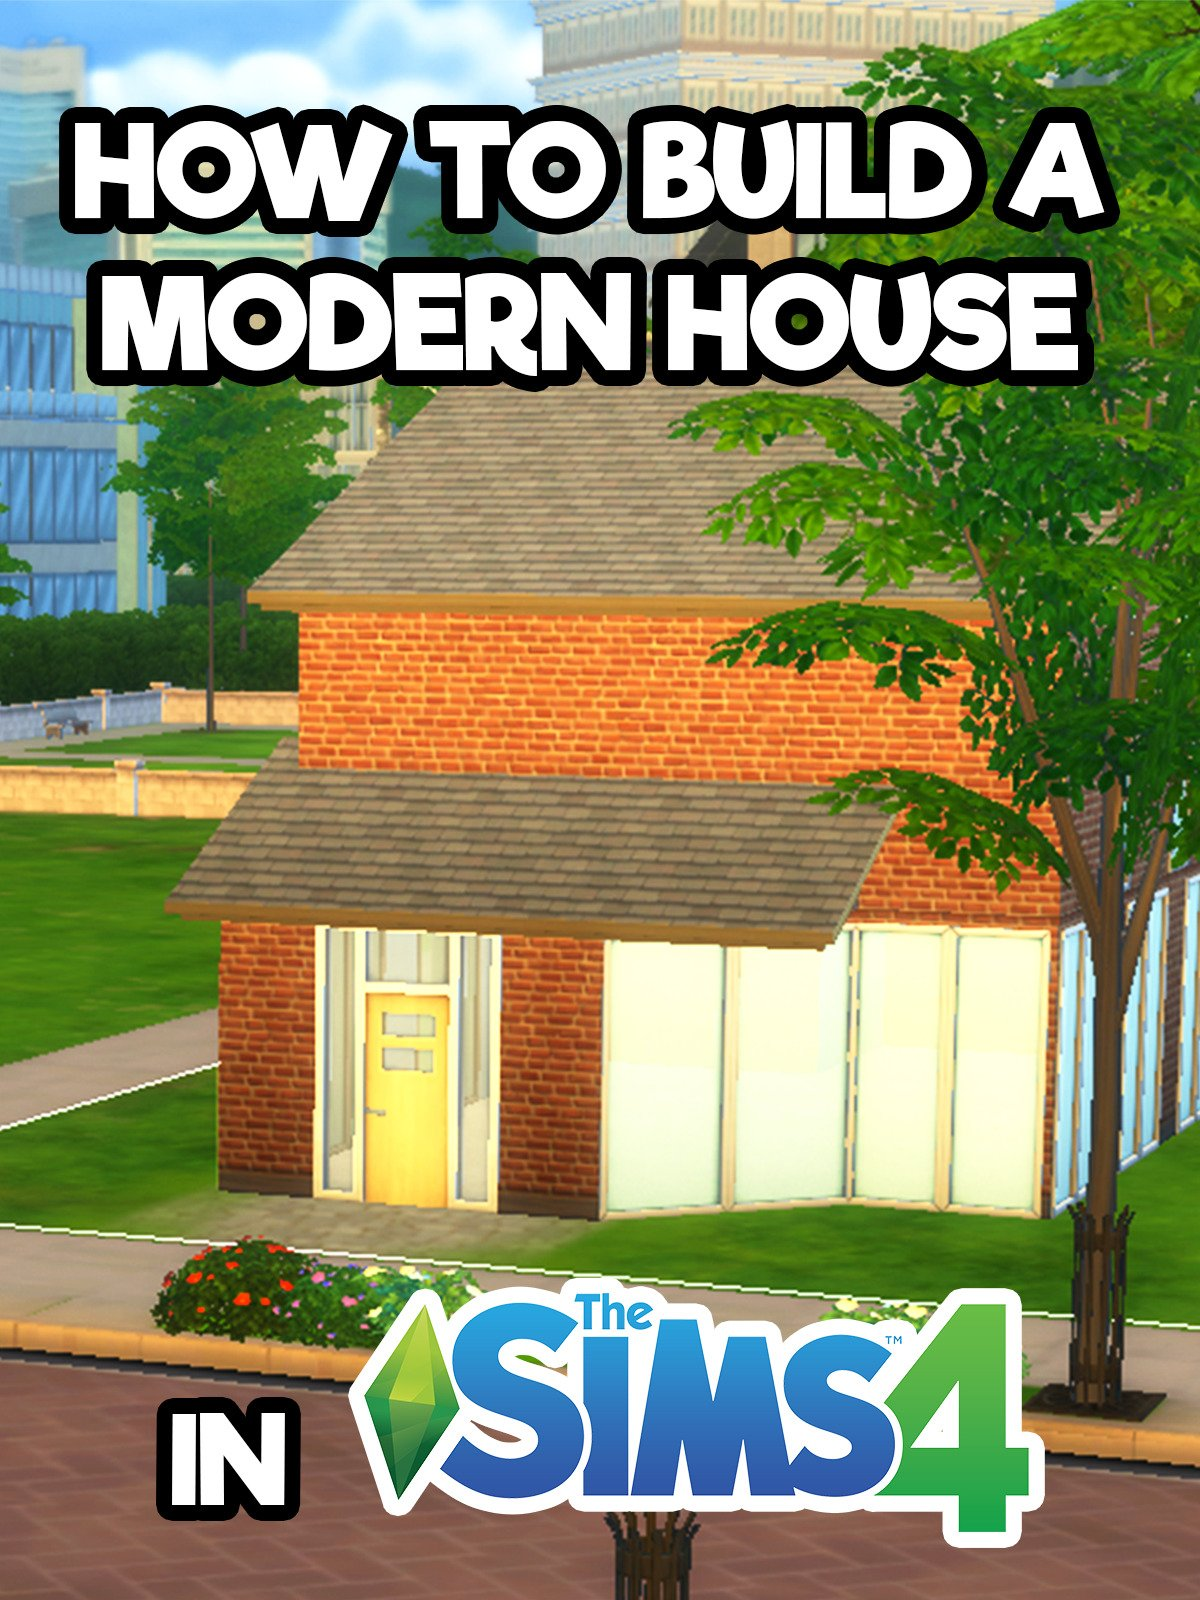 Clip: How to build a modern house in The Sims 4